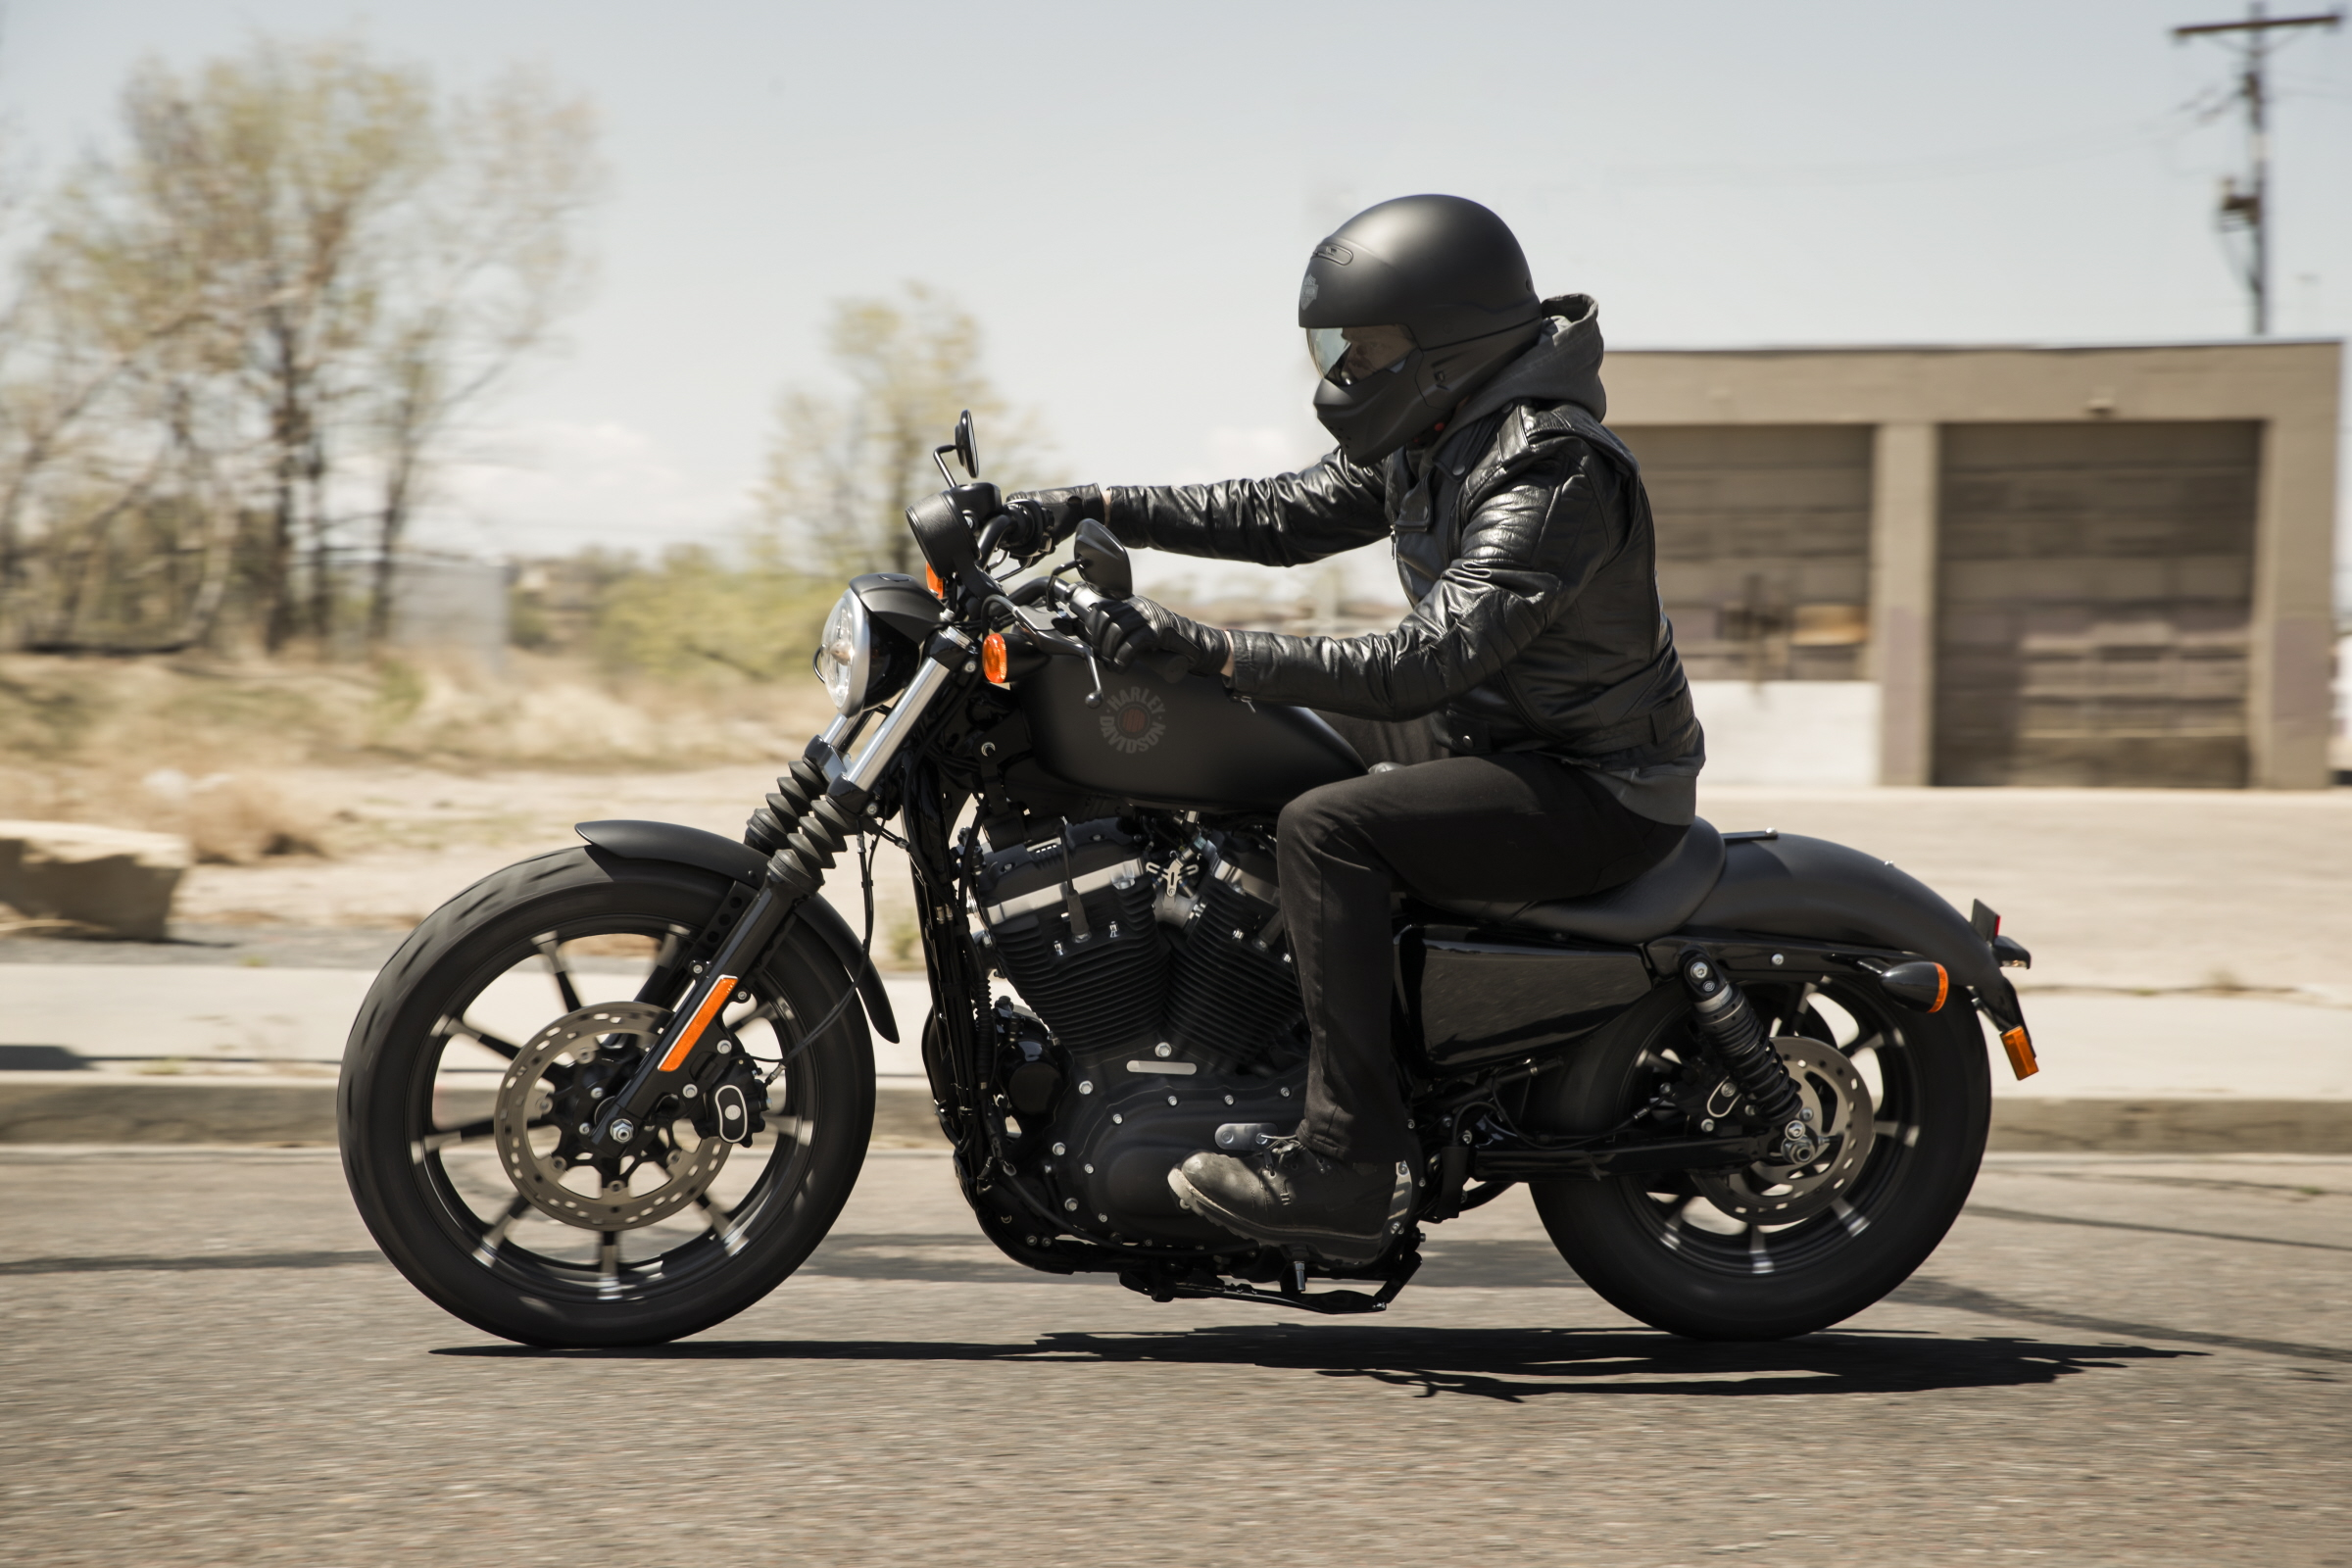 Harley Dealers in India Include Riding Gear With New